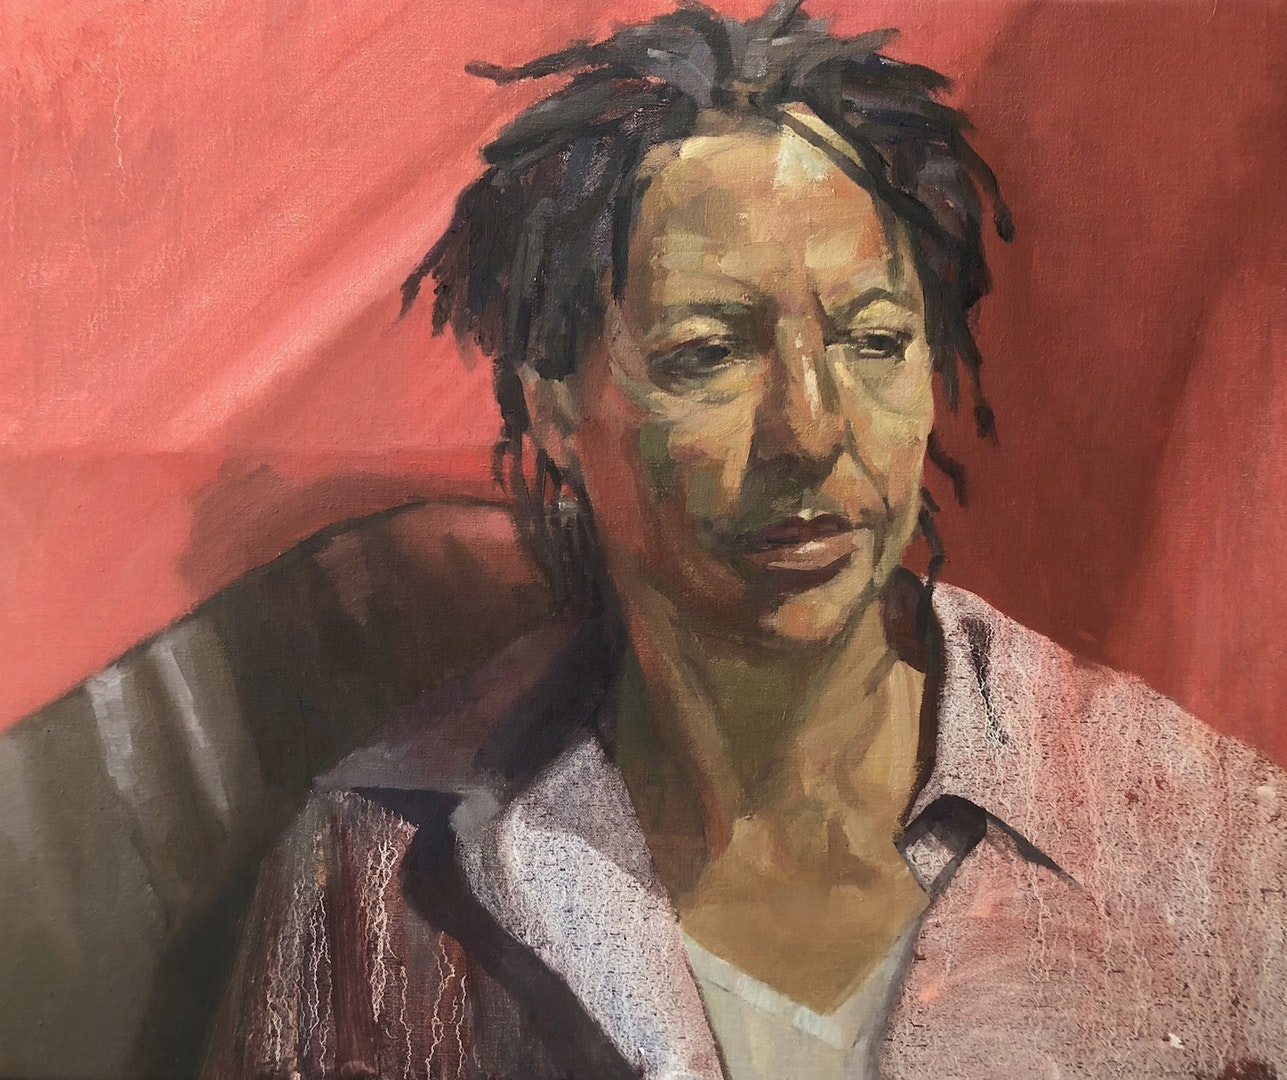 'Joanna and the Red Blanket', Ian Price, Oil on canvas, 51 x 61 x 2 cm